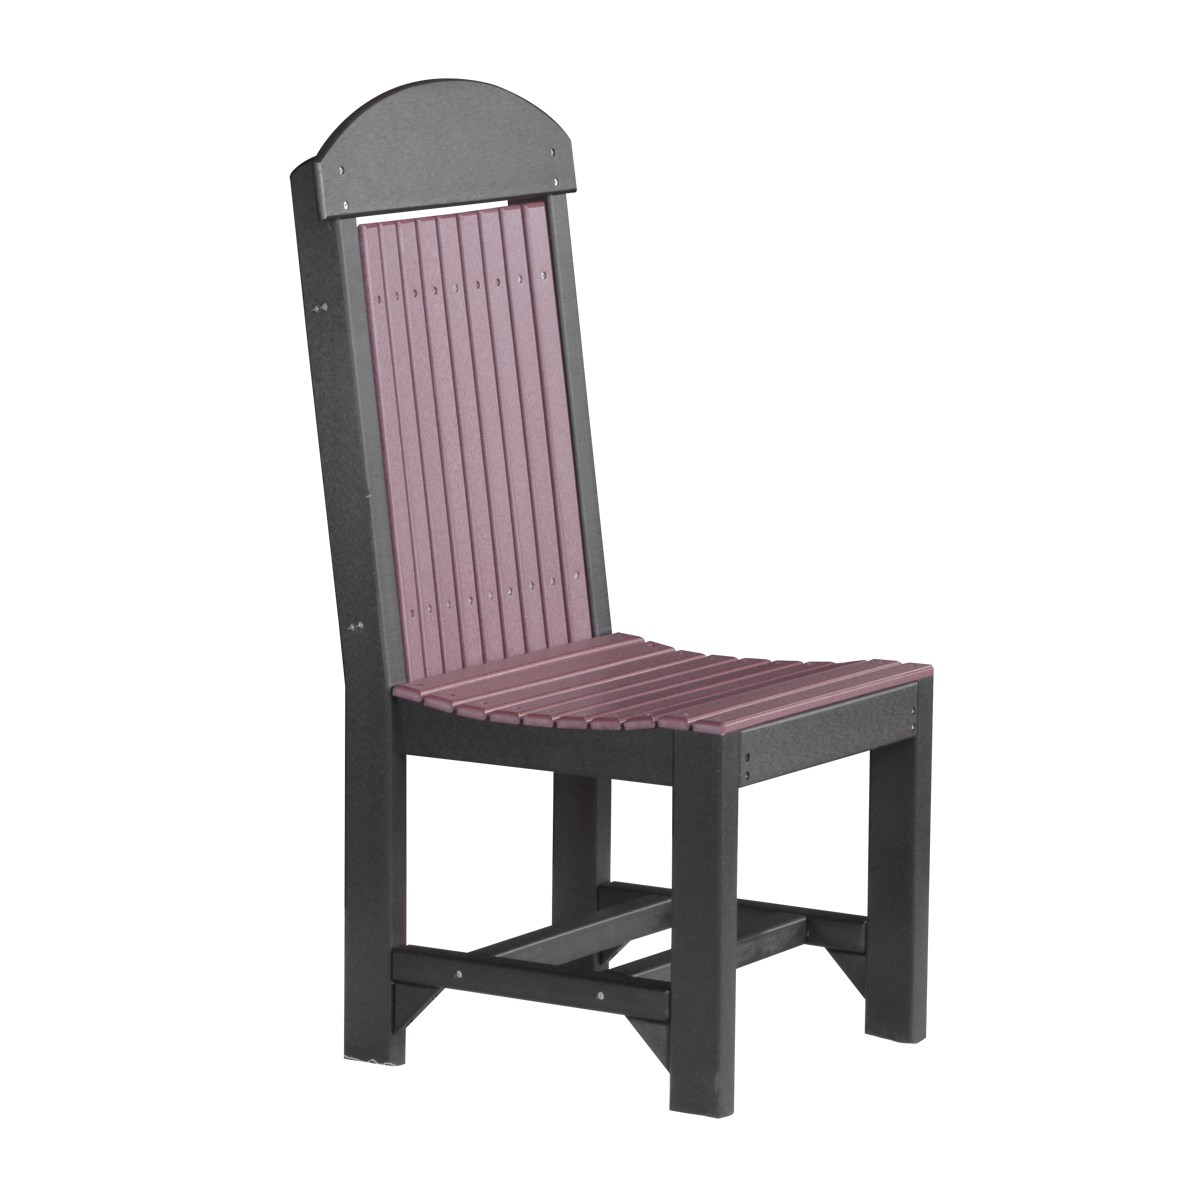 Restaurant Patio Chairs Outdoor Dining Chair Recycled Patio Fine Oak Things